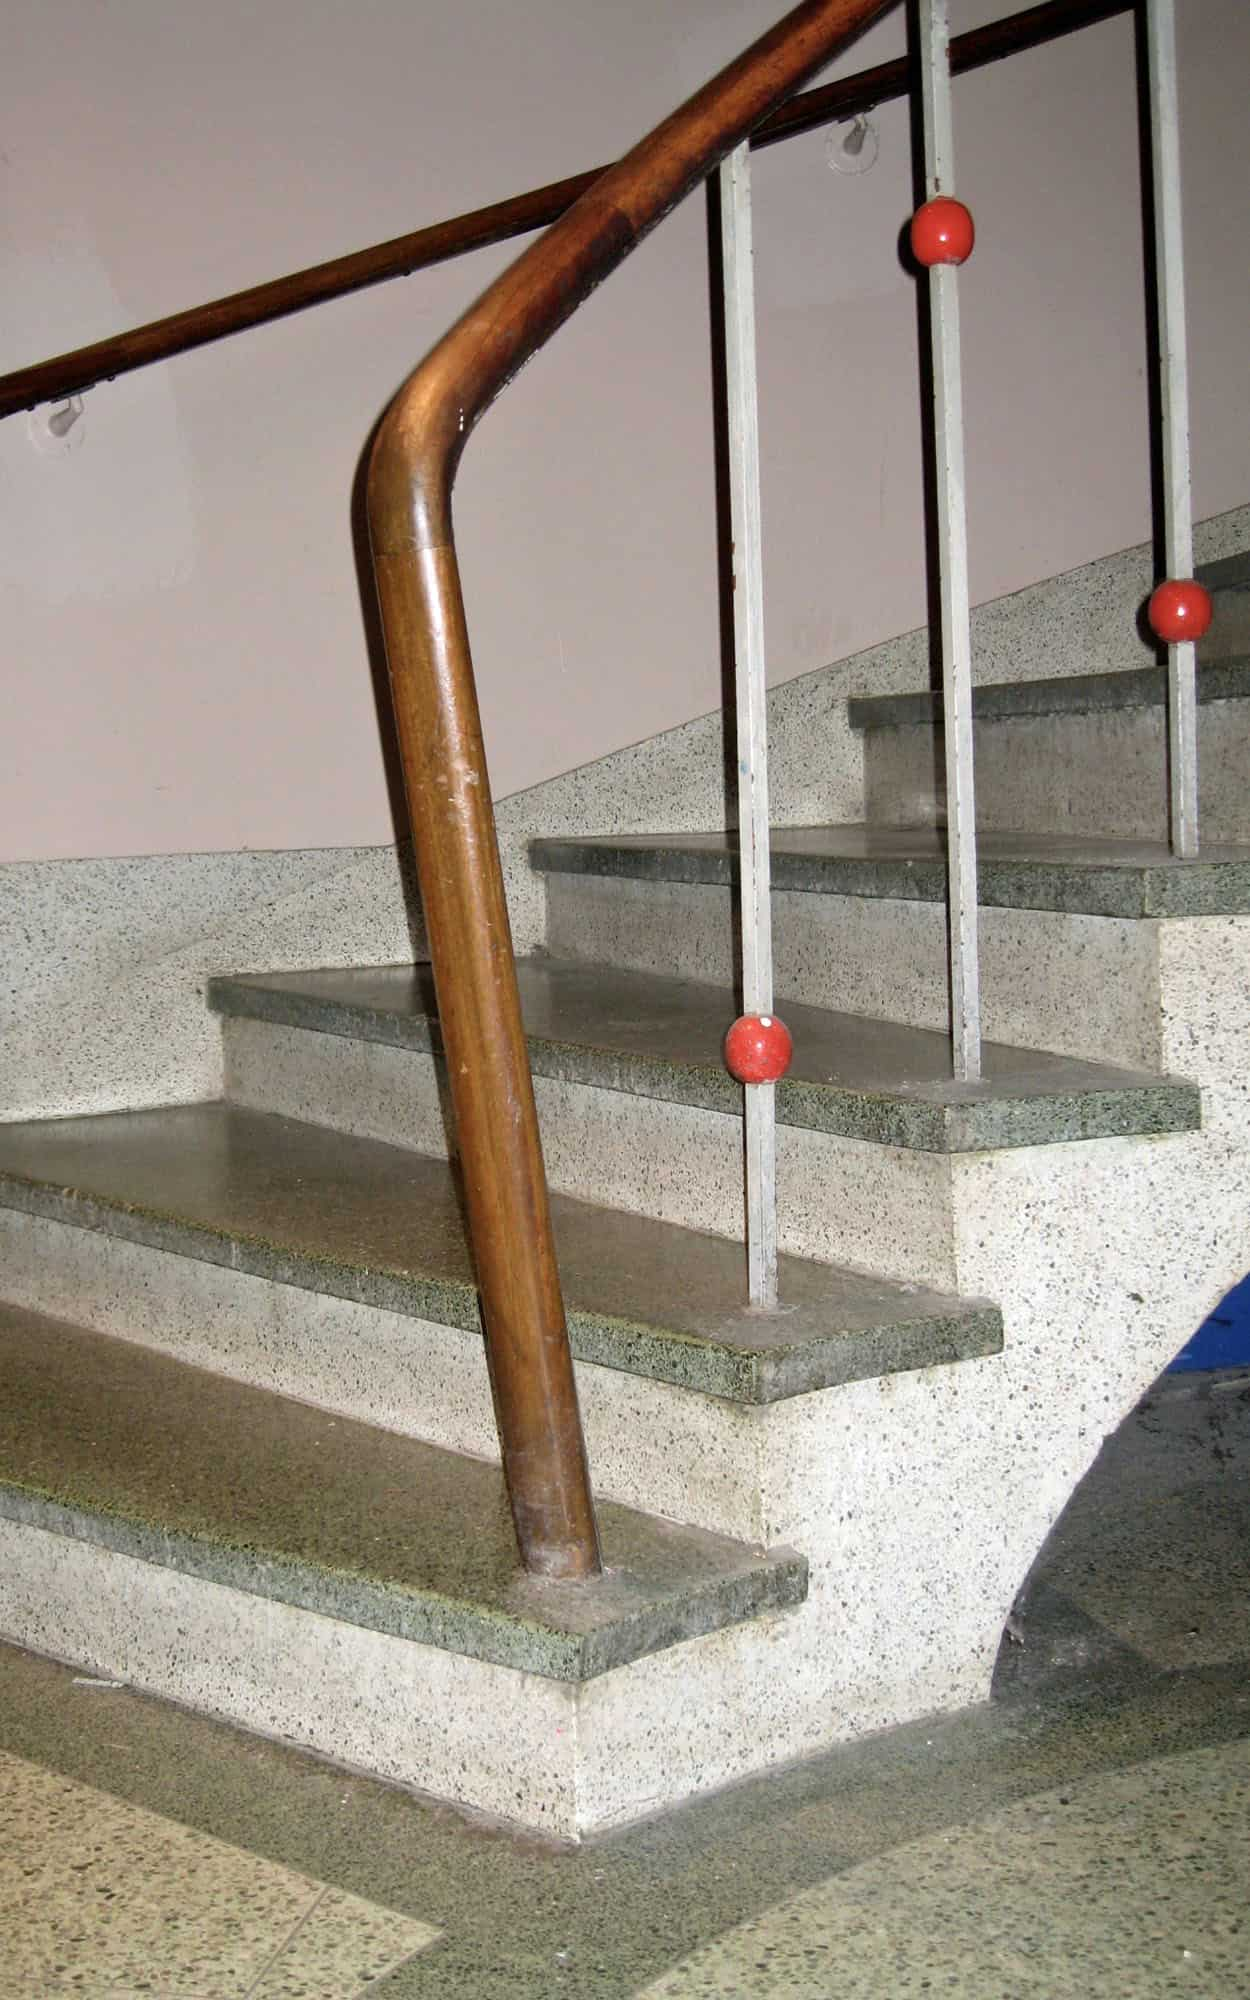 Detail of terrazzo finishes, wooden handrail and balusters which comprise the dramatic main stair